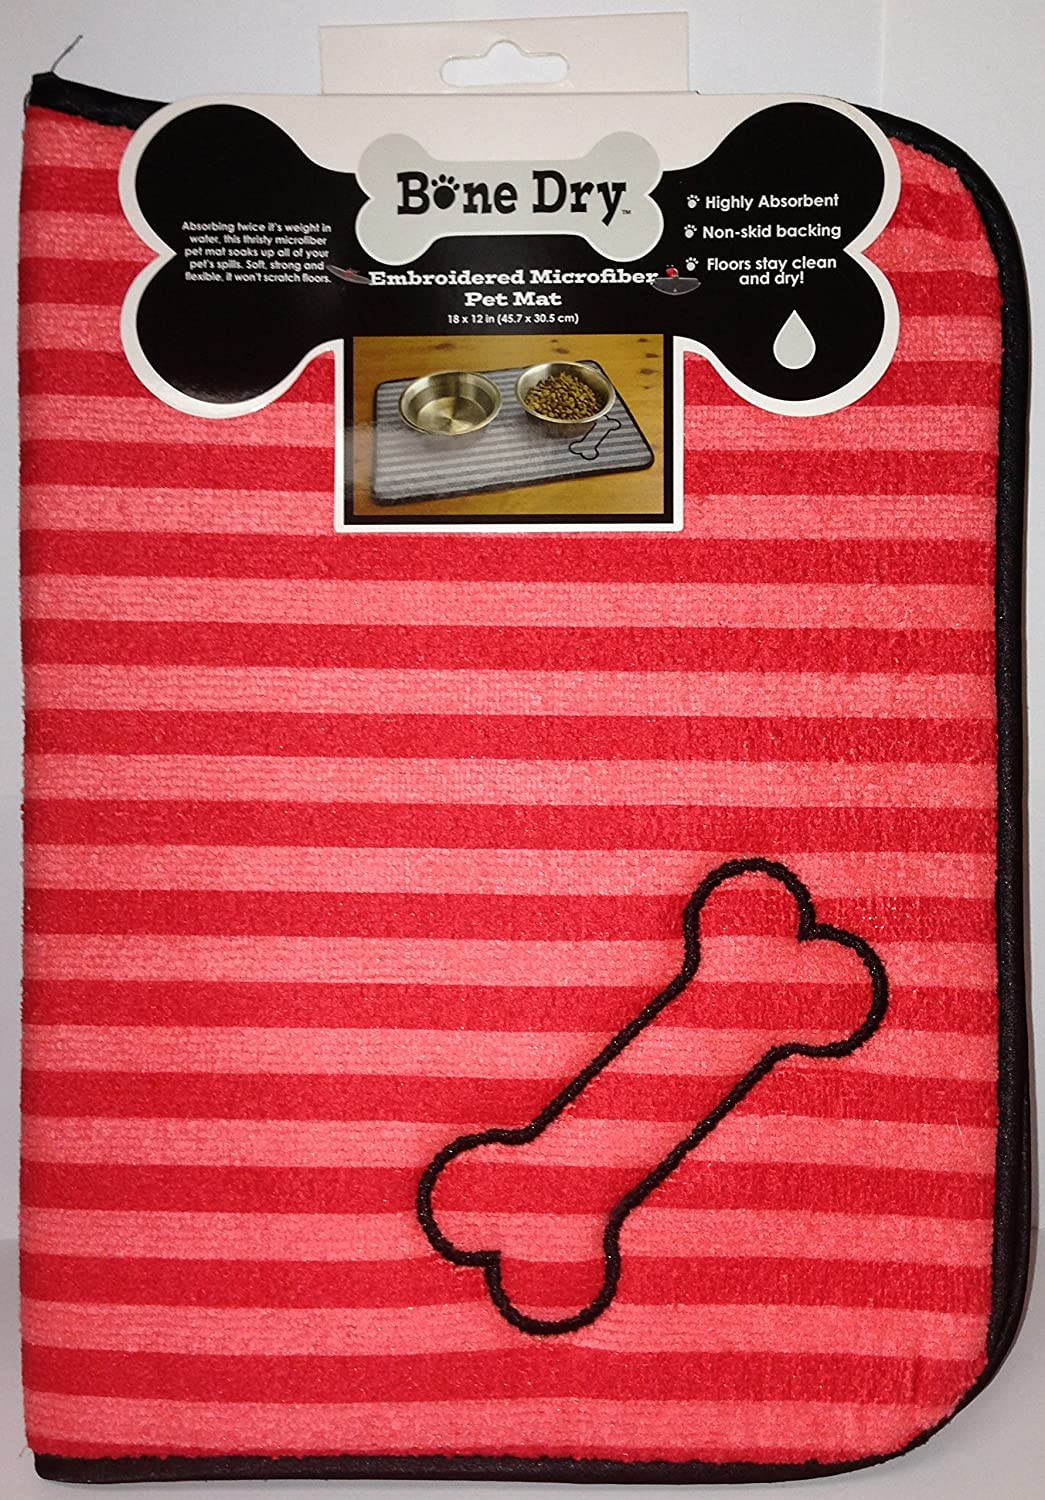 Bone Dry Embroidered Microfiber Pet Mat (Pink Red)  Dog Bone Print